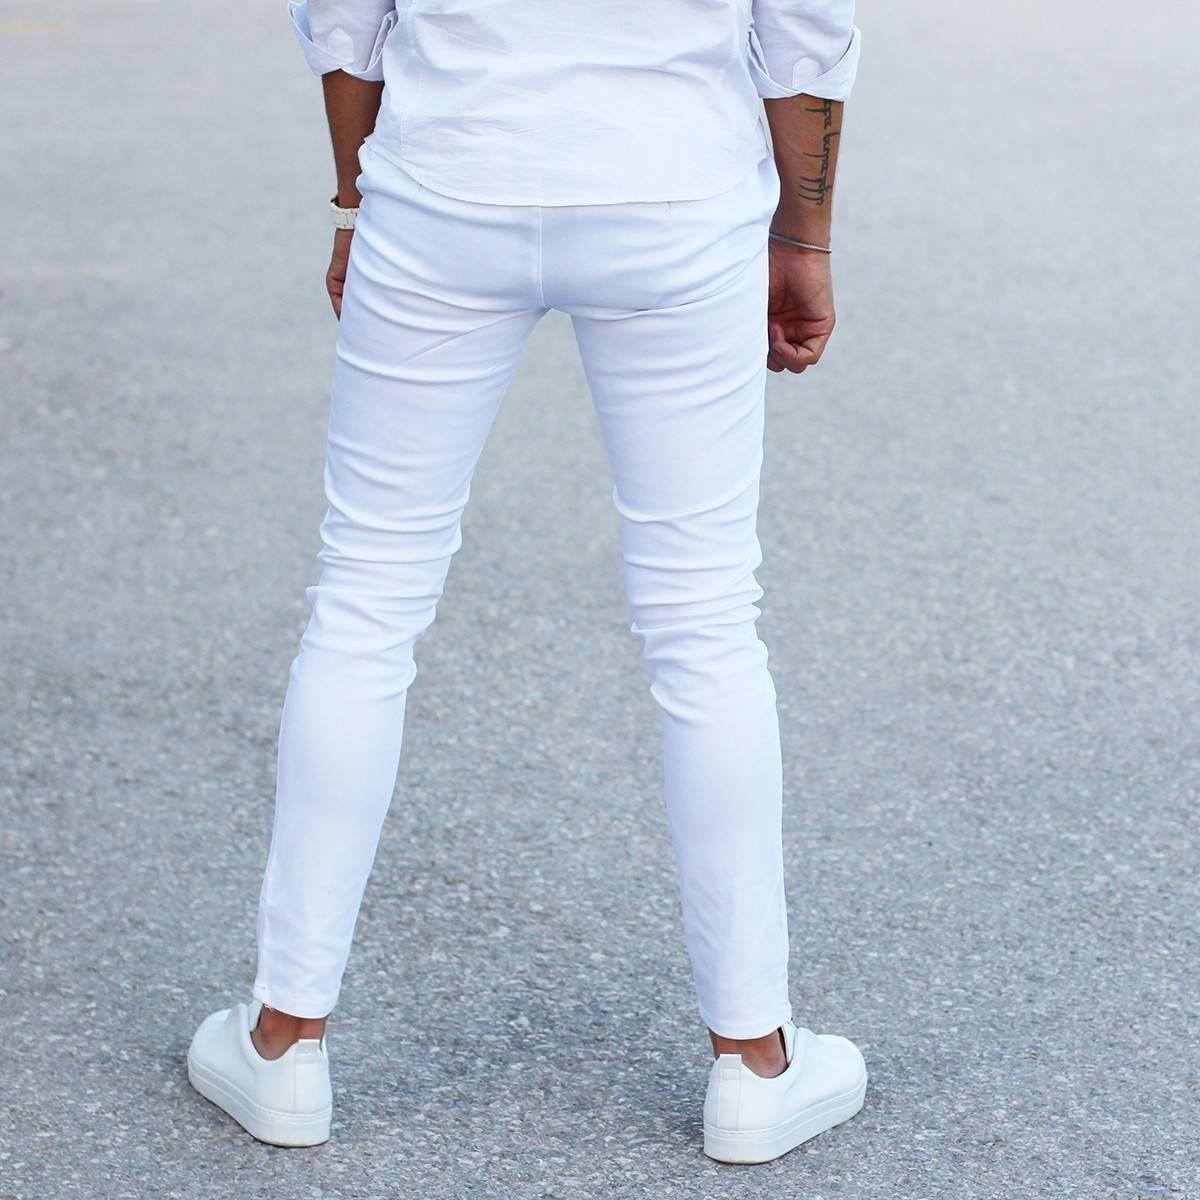 Men's Skinny Trousers Cool Edition in New White MV Jeans Collection - 4